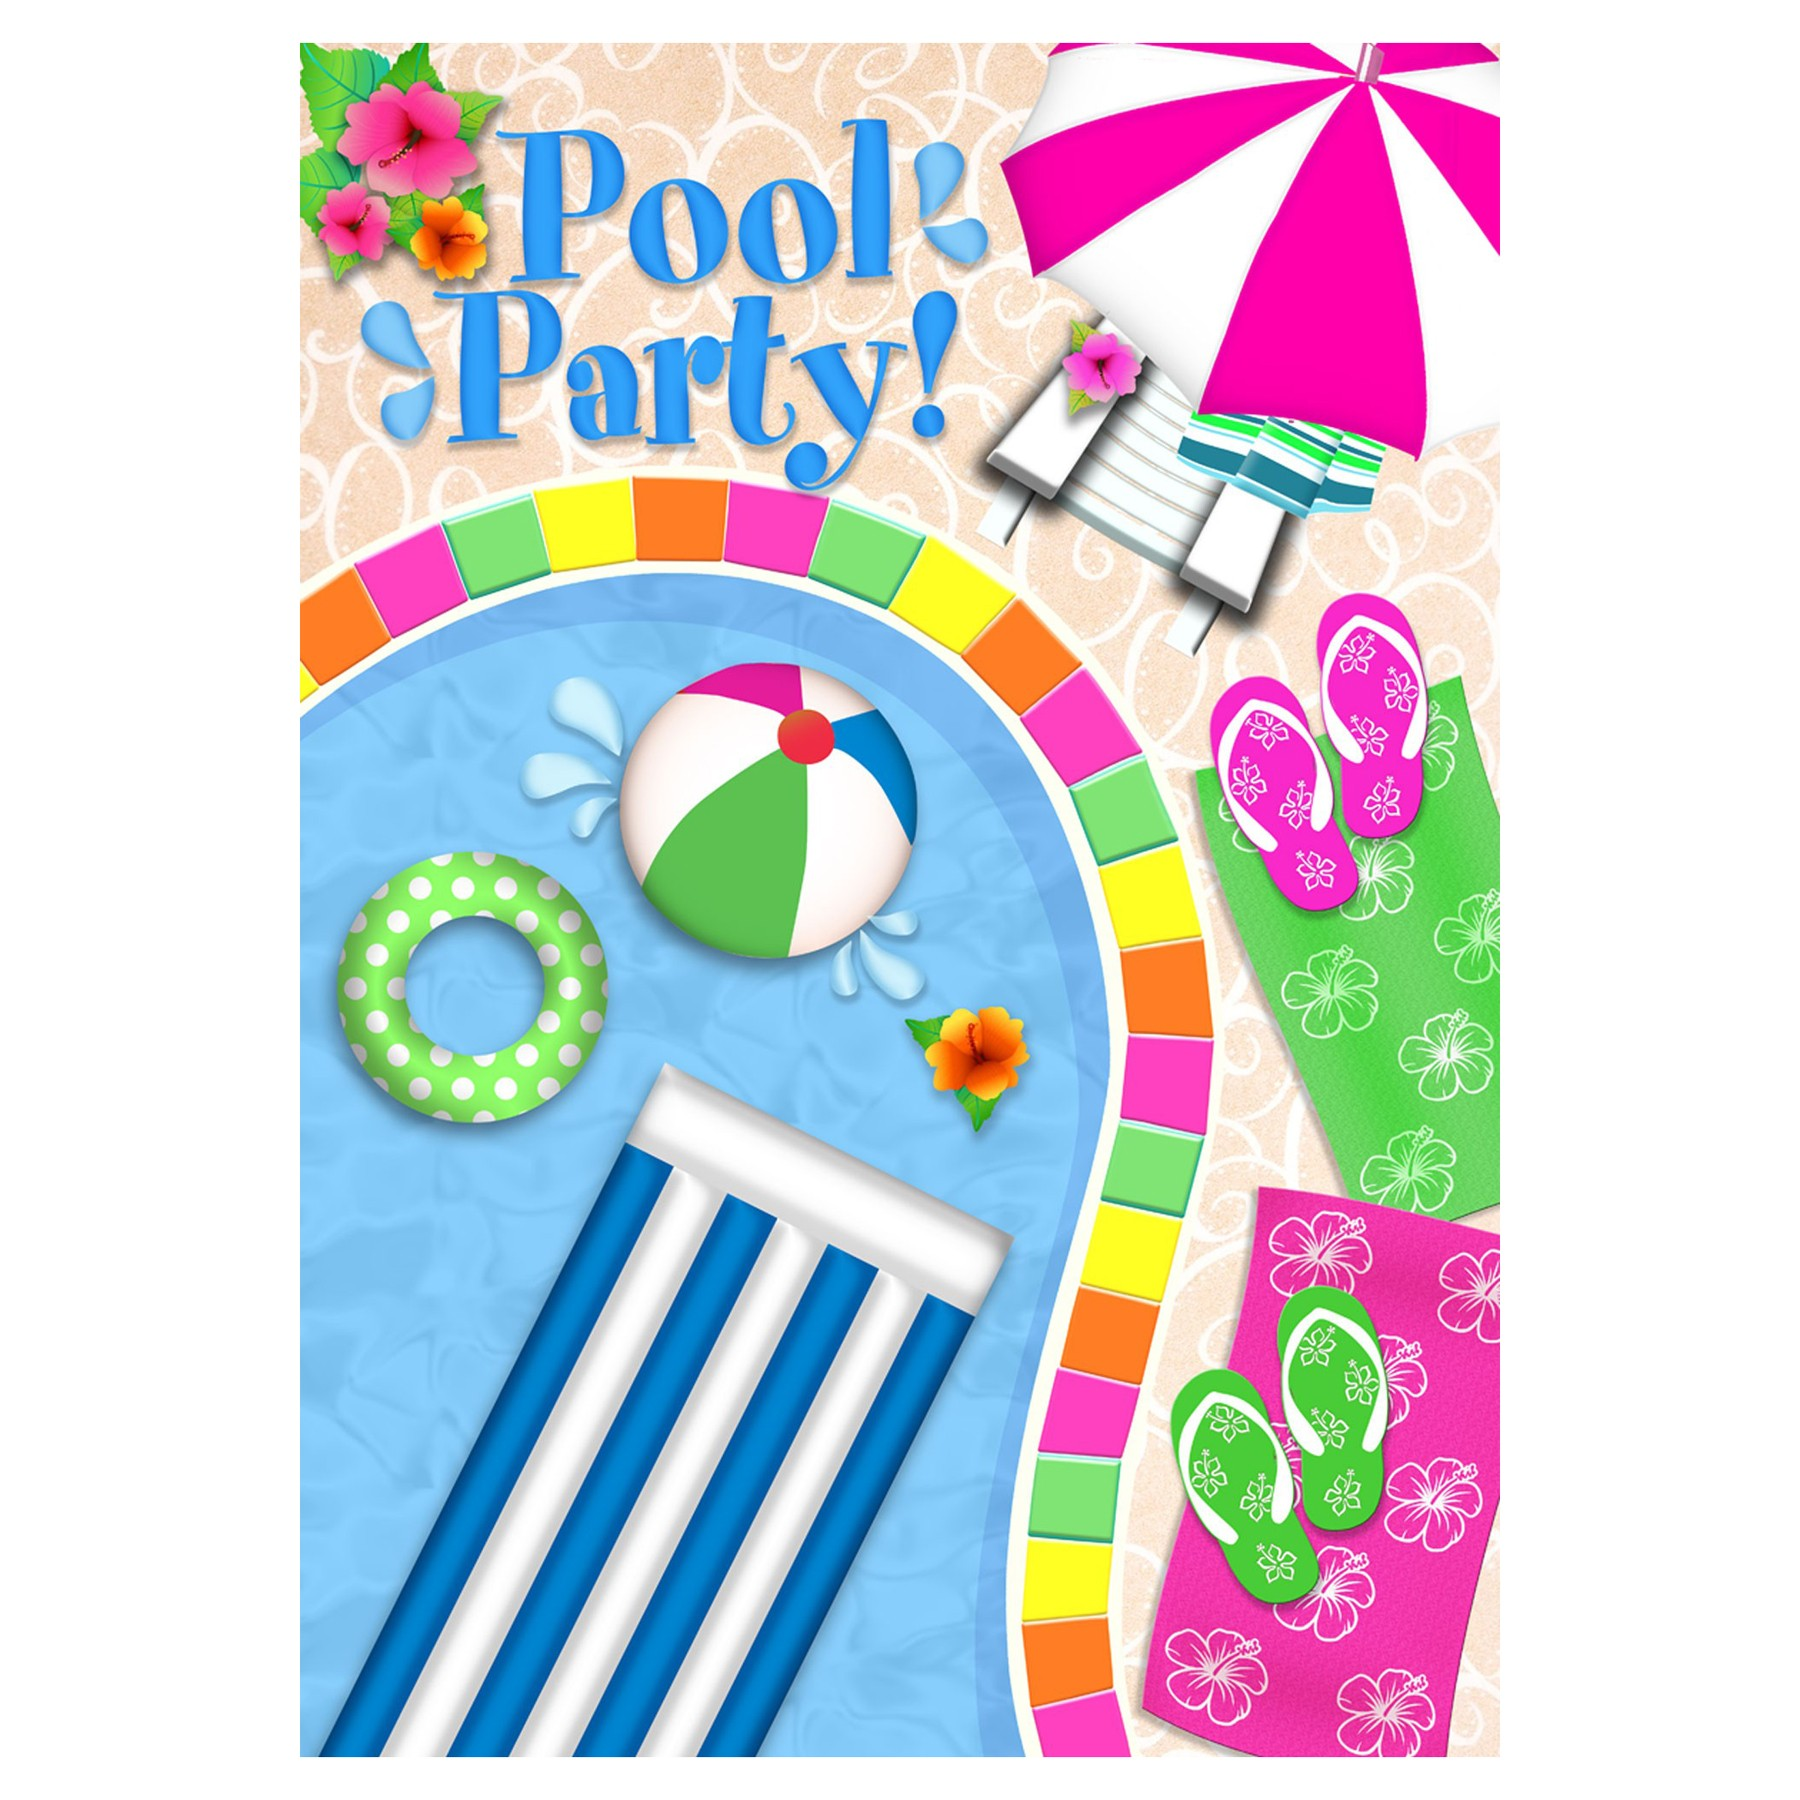 Olympic Party Invitations is adorable invitations design